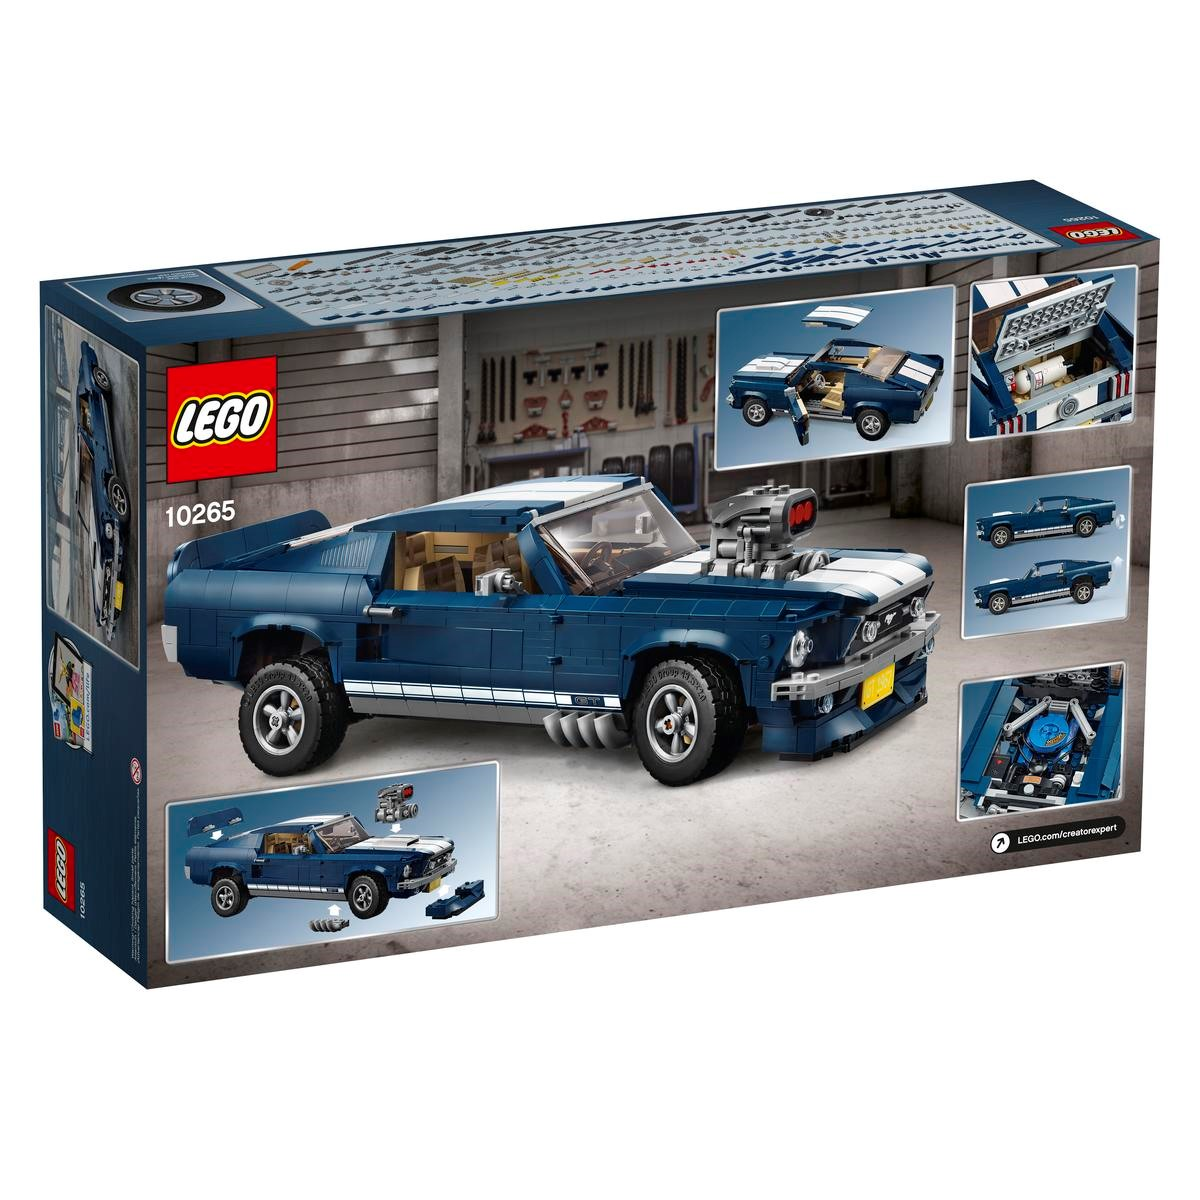 Ford Mustang Lego Creator 10265 Set Box Back Coolthingscom Cool